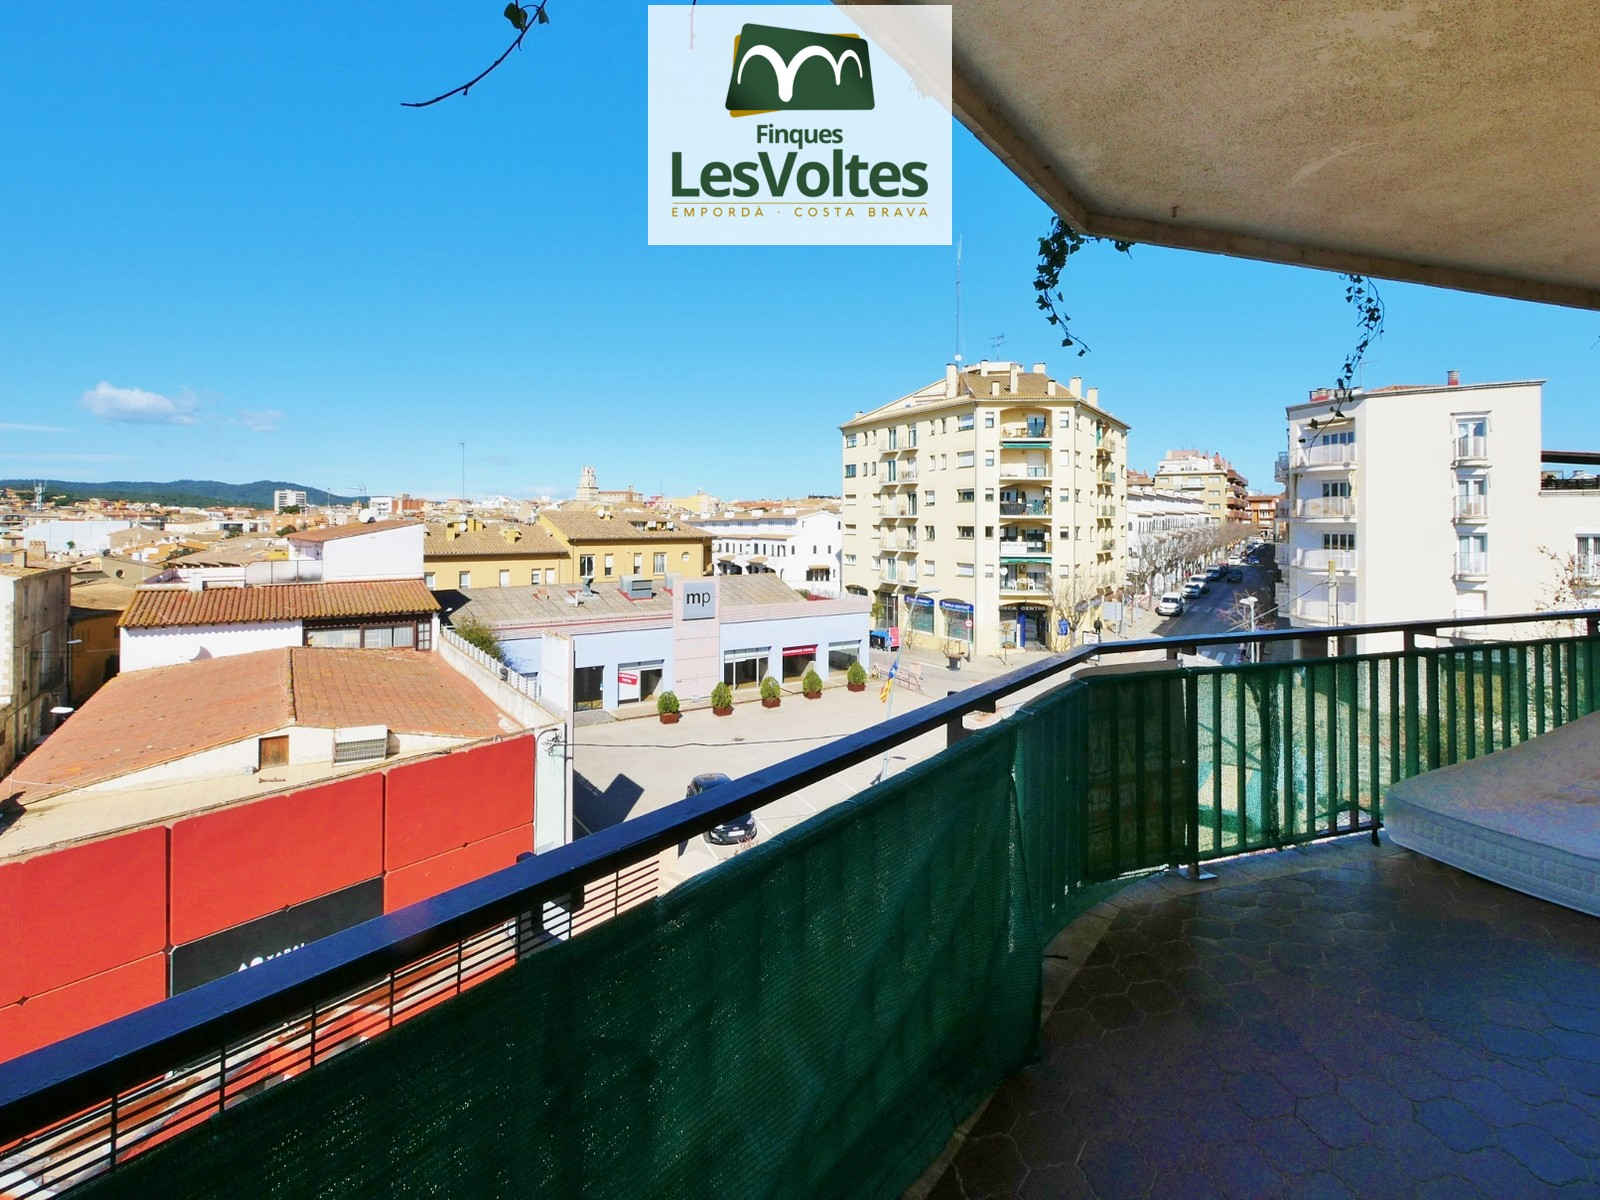 3 ROOMS APARTMENT WITH TERRACE FOR SALE IN AREA NEAR THE CENTER OF PALAFRUGELL. GOOD VIEWS AND GOOD CONDITION.